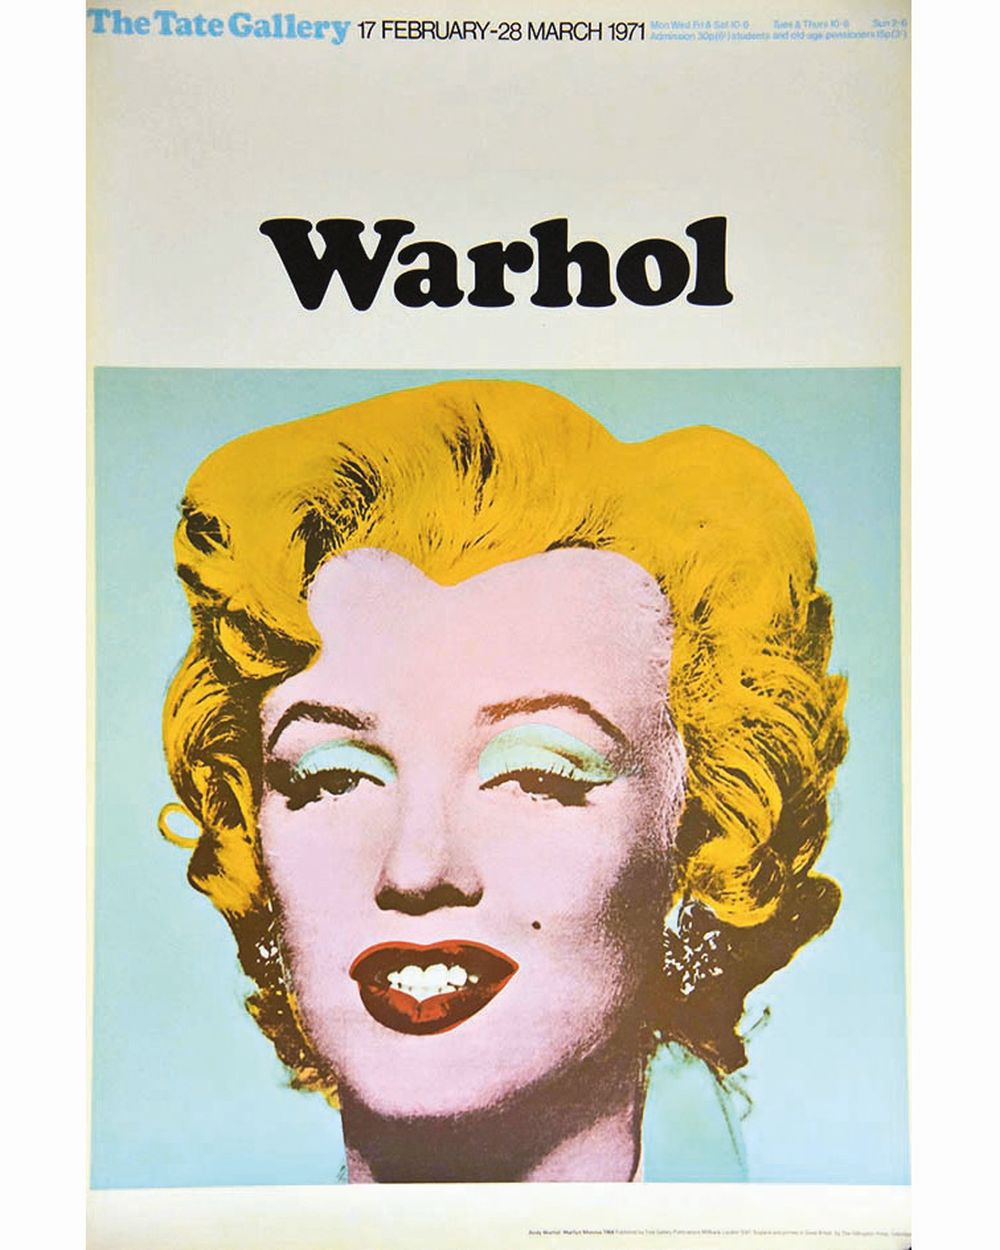 Andy Warhol Prix De Vente warhol andy - andy warholl - marilyn london the tate gallery